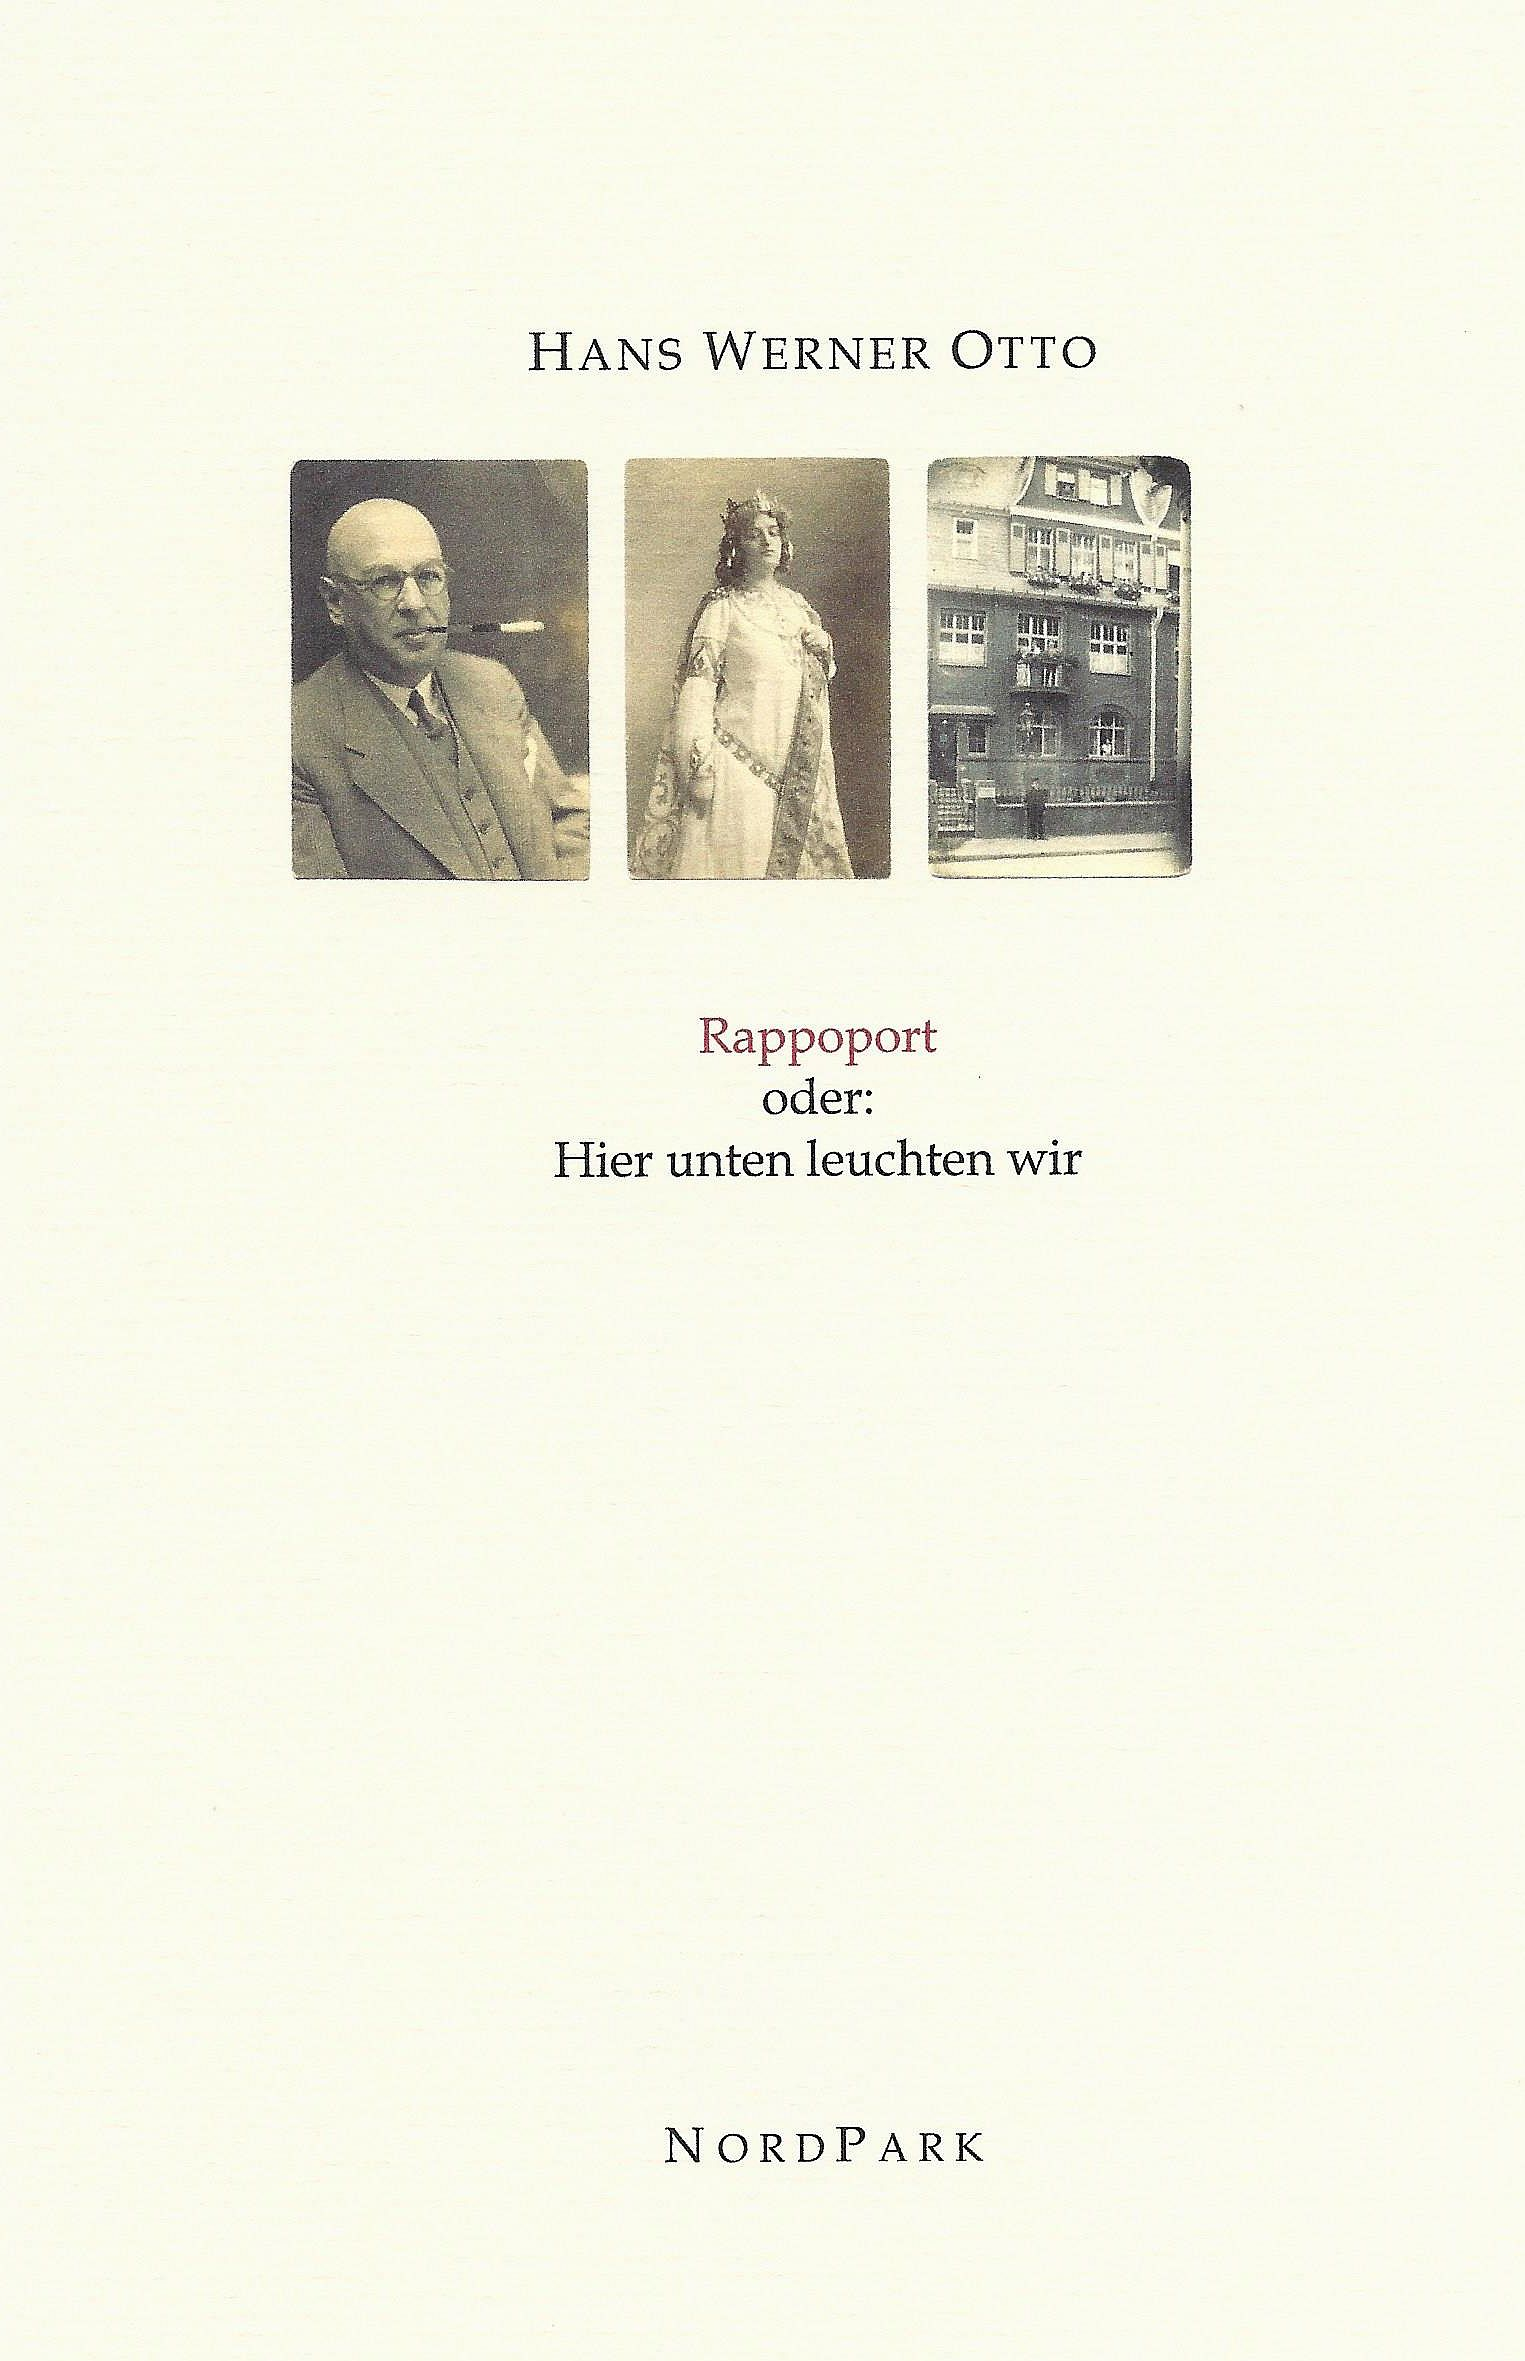 Otto-hans-werner-rappoport-cover.jpg